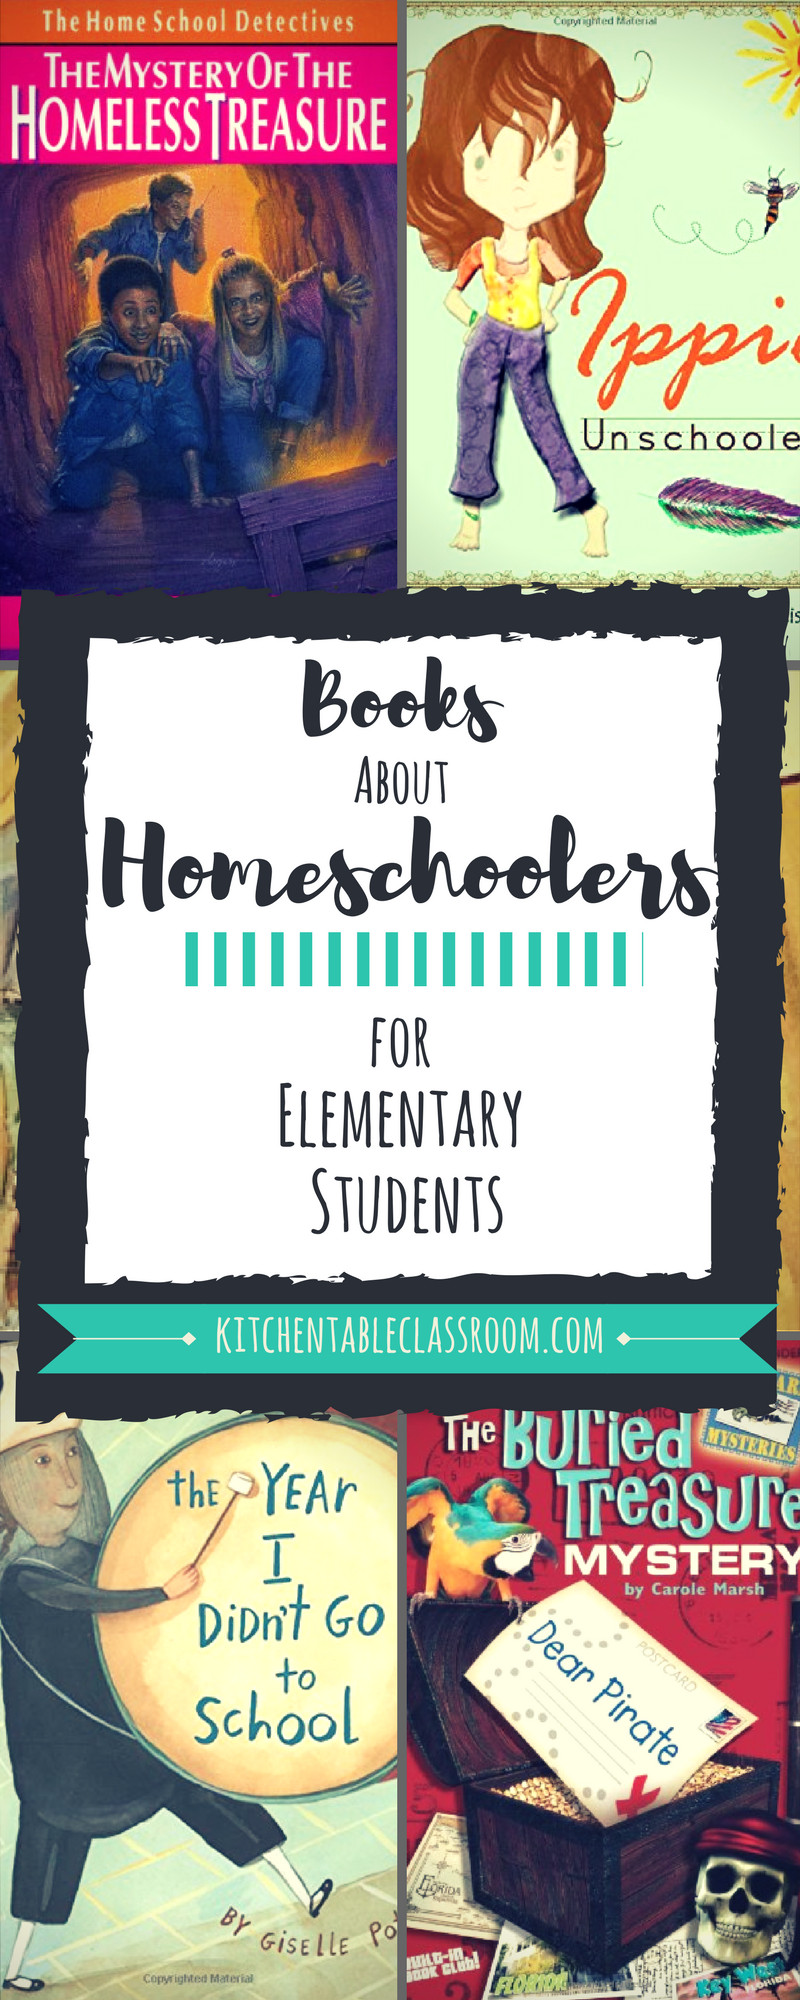 Books Featuring Homeschoolers for Elementary Students | Students and ...